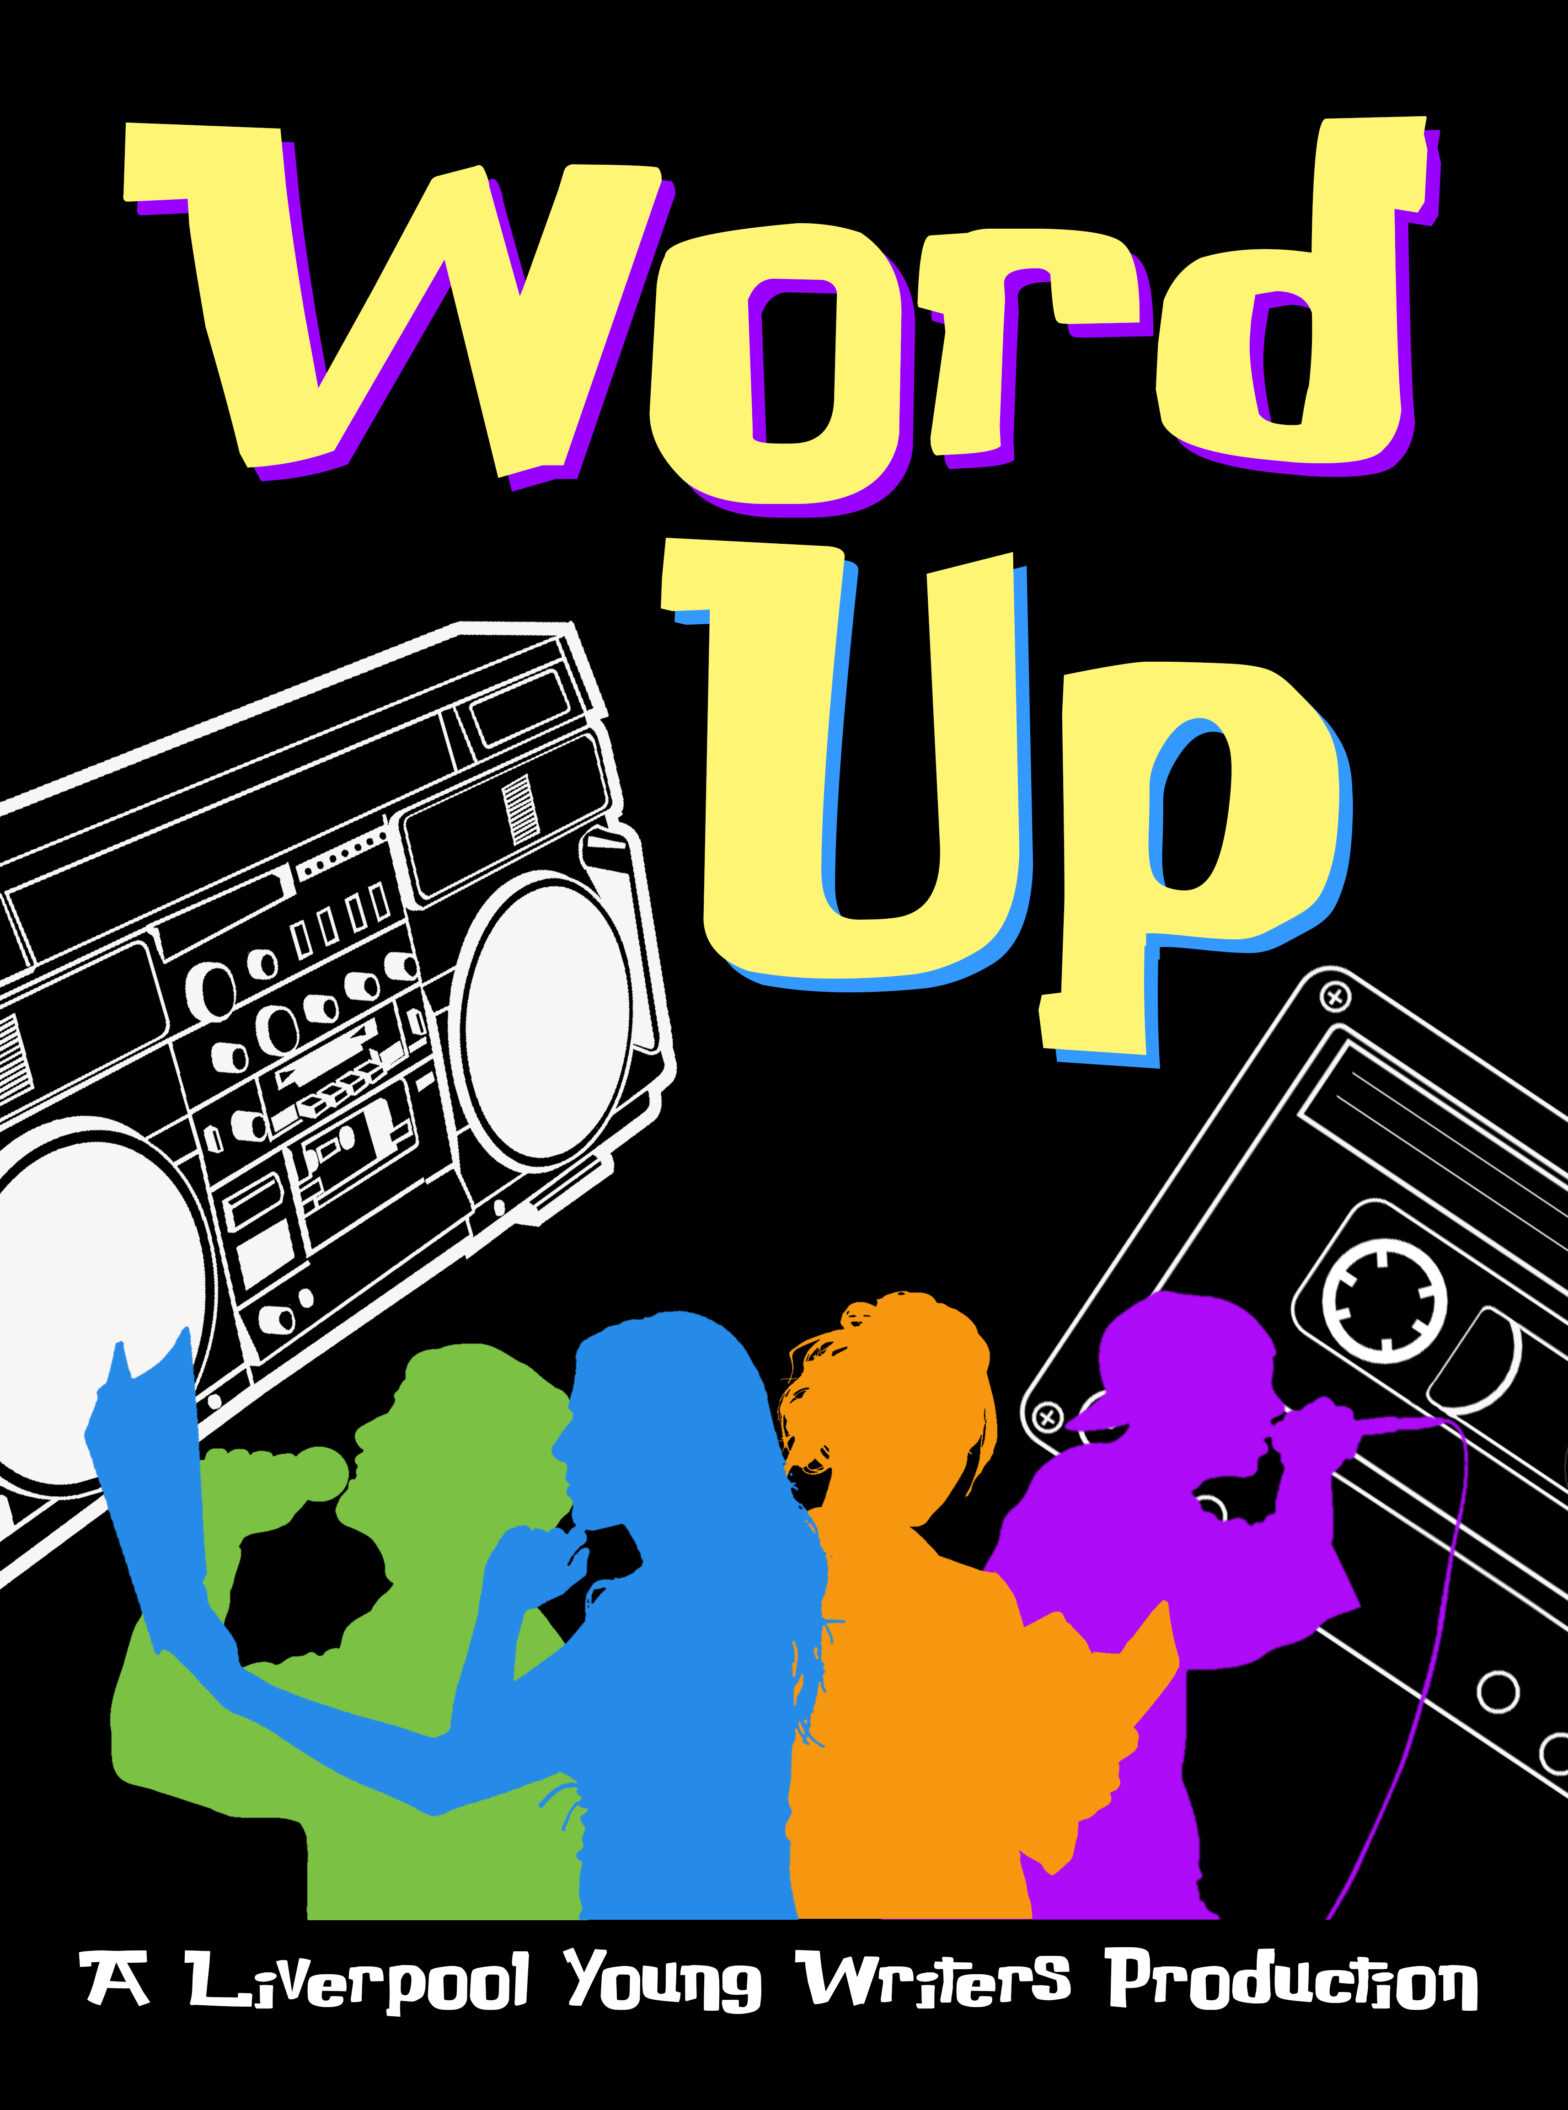 Word Up by Liverpool Young Writers